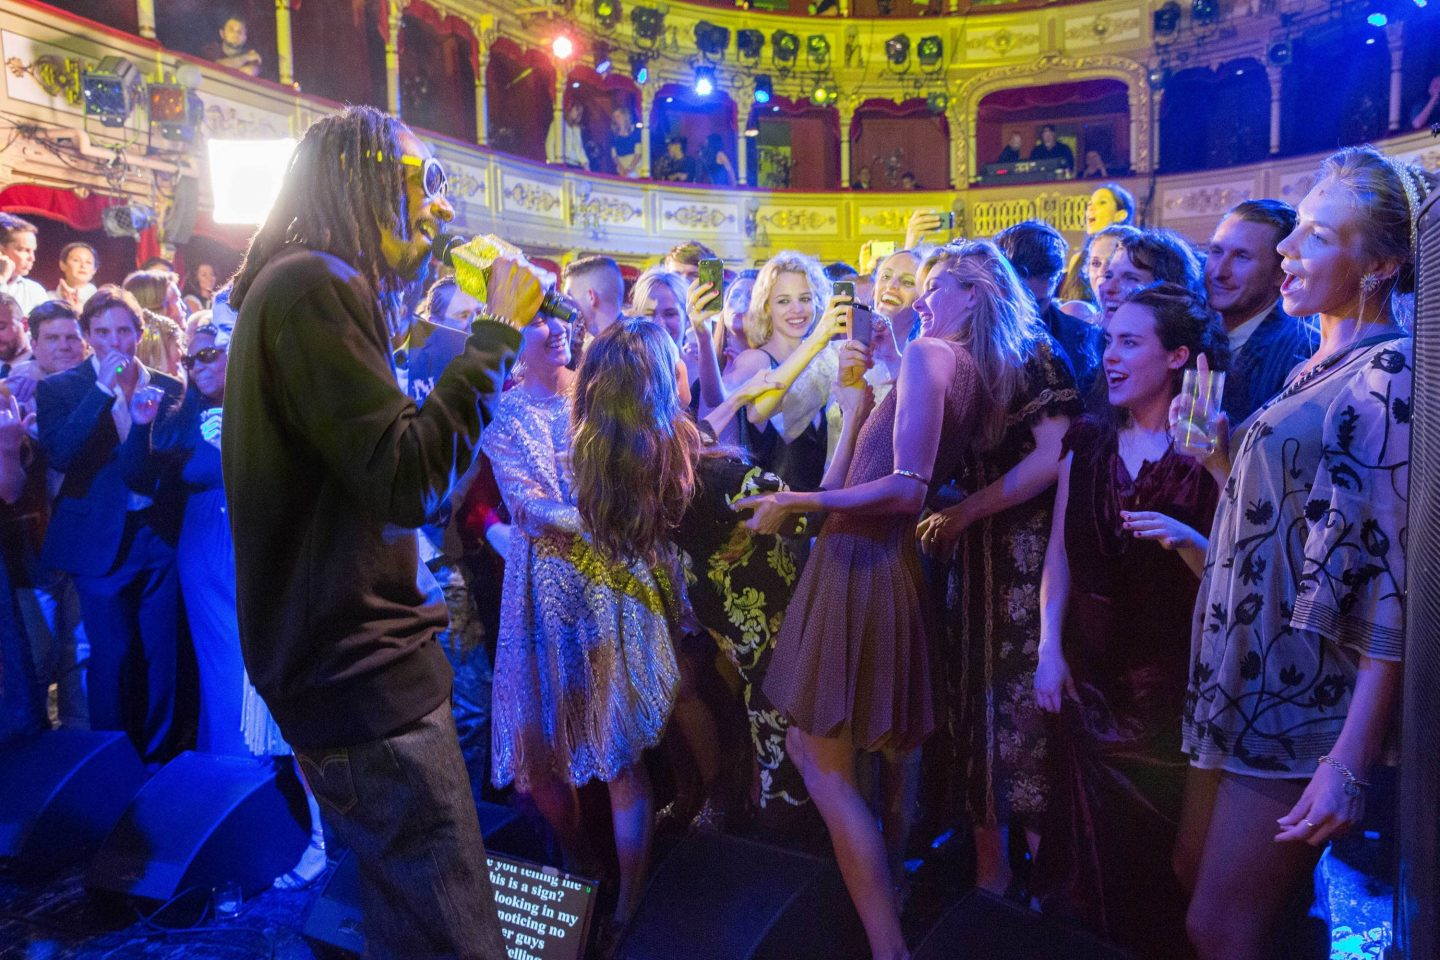 Snoop Dogg with guests dancing at Barchannal shabbat dinner party at this Dubrovnik Wedding in Croatia | Photo by Robert Fairer